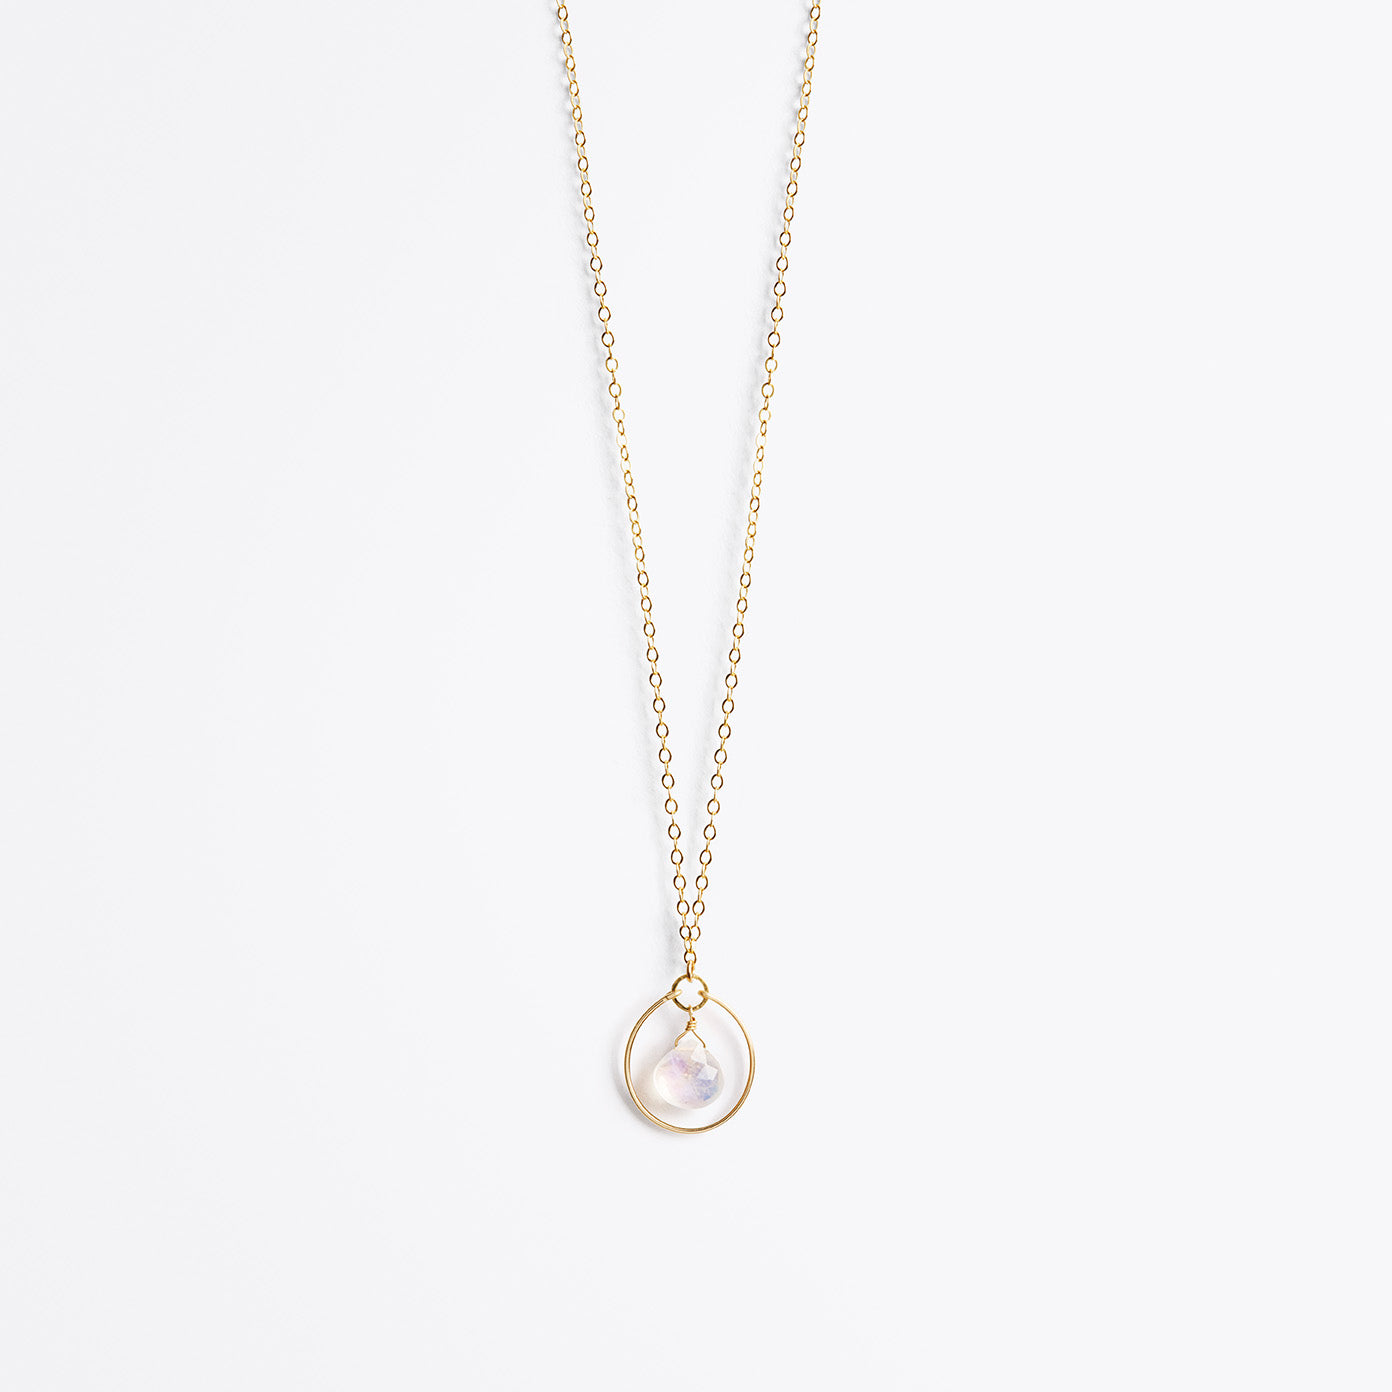 petite stella orb gold chain necklace | rainbow moonstone